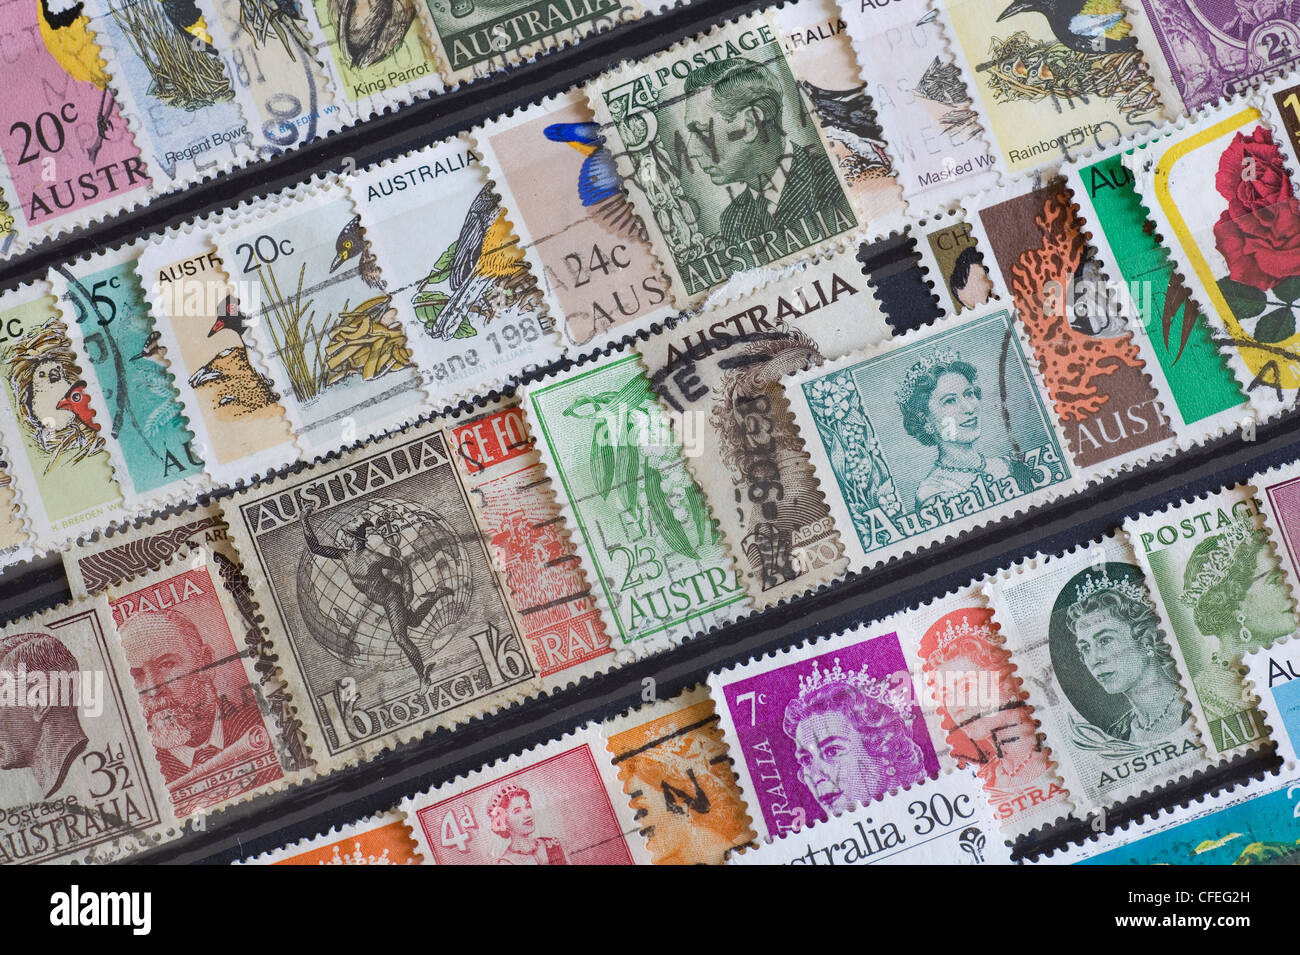 Australian postage stamps in a stamp album collection - Stock Image